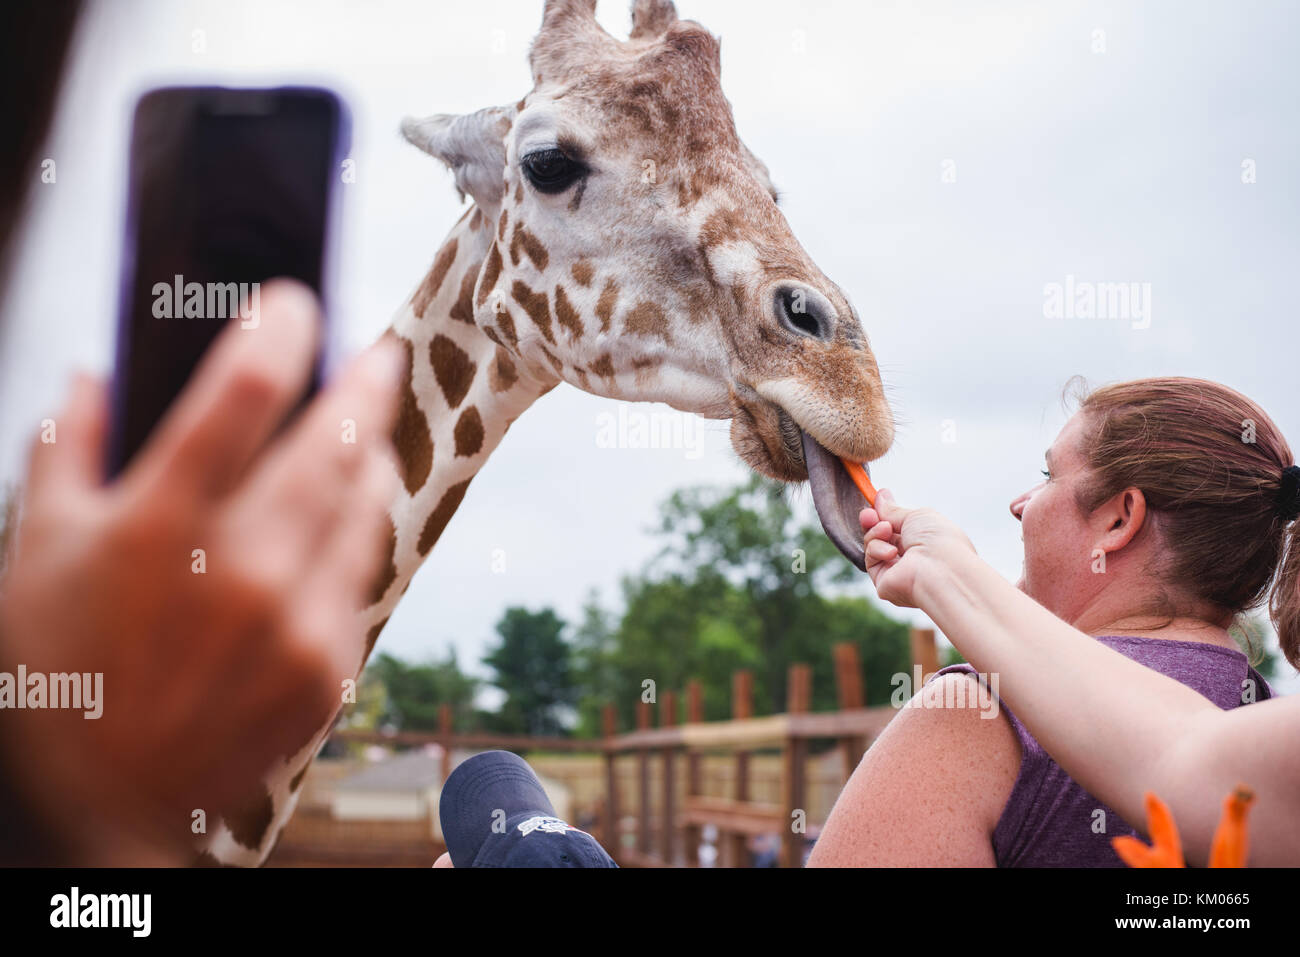 April the Giraffe visits with people at Animal Adventure Park in Harpursville, NY - Stock Image